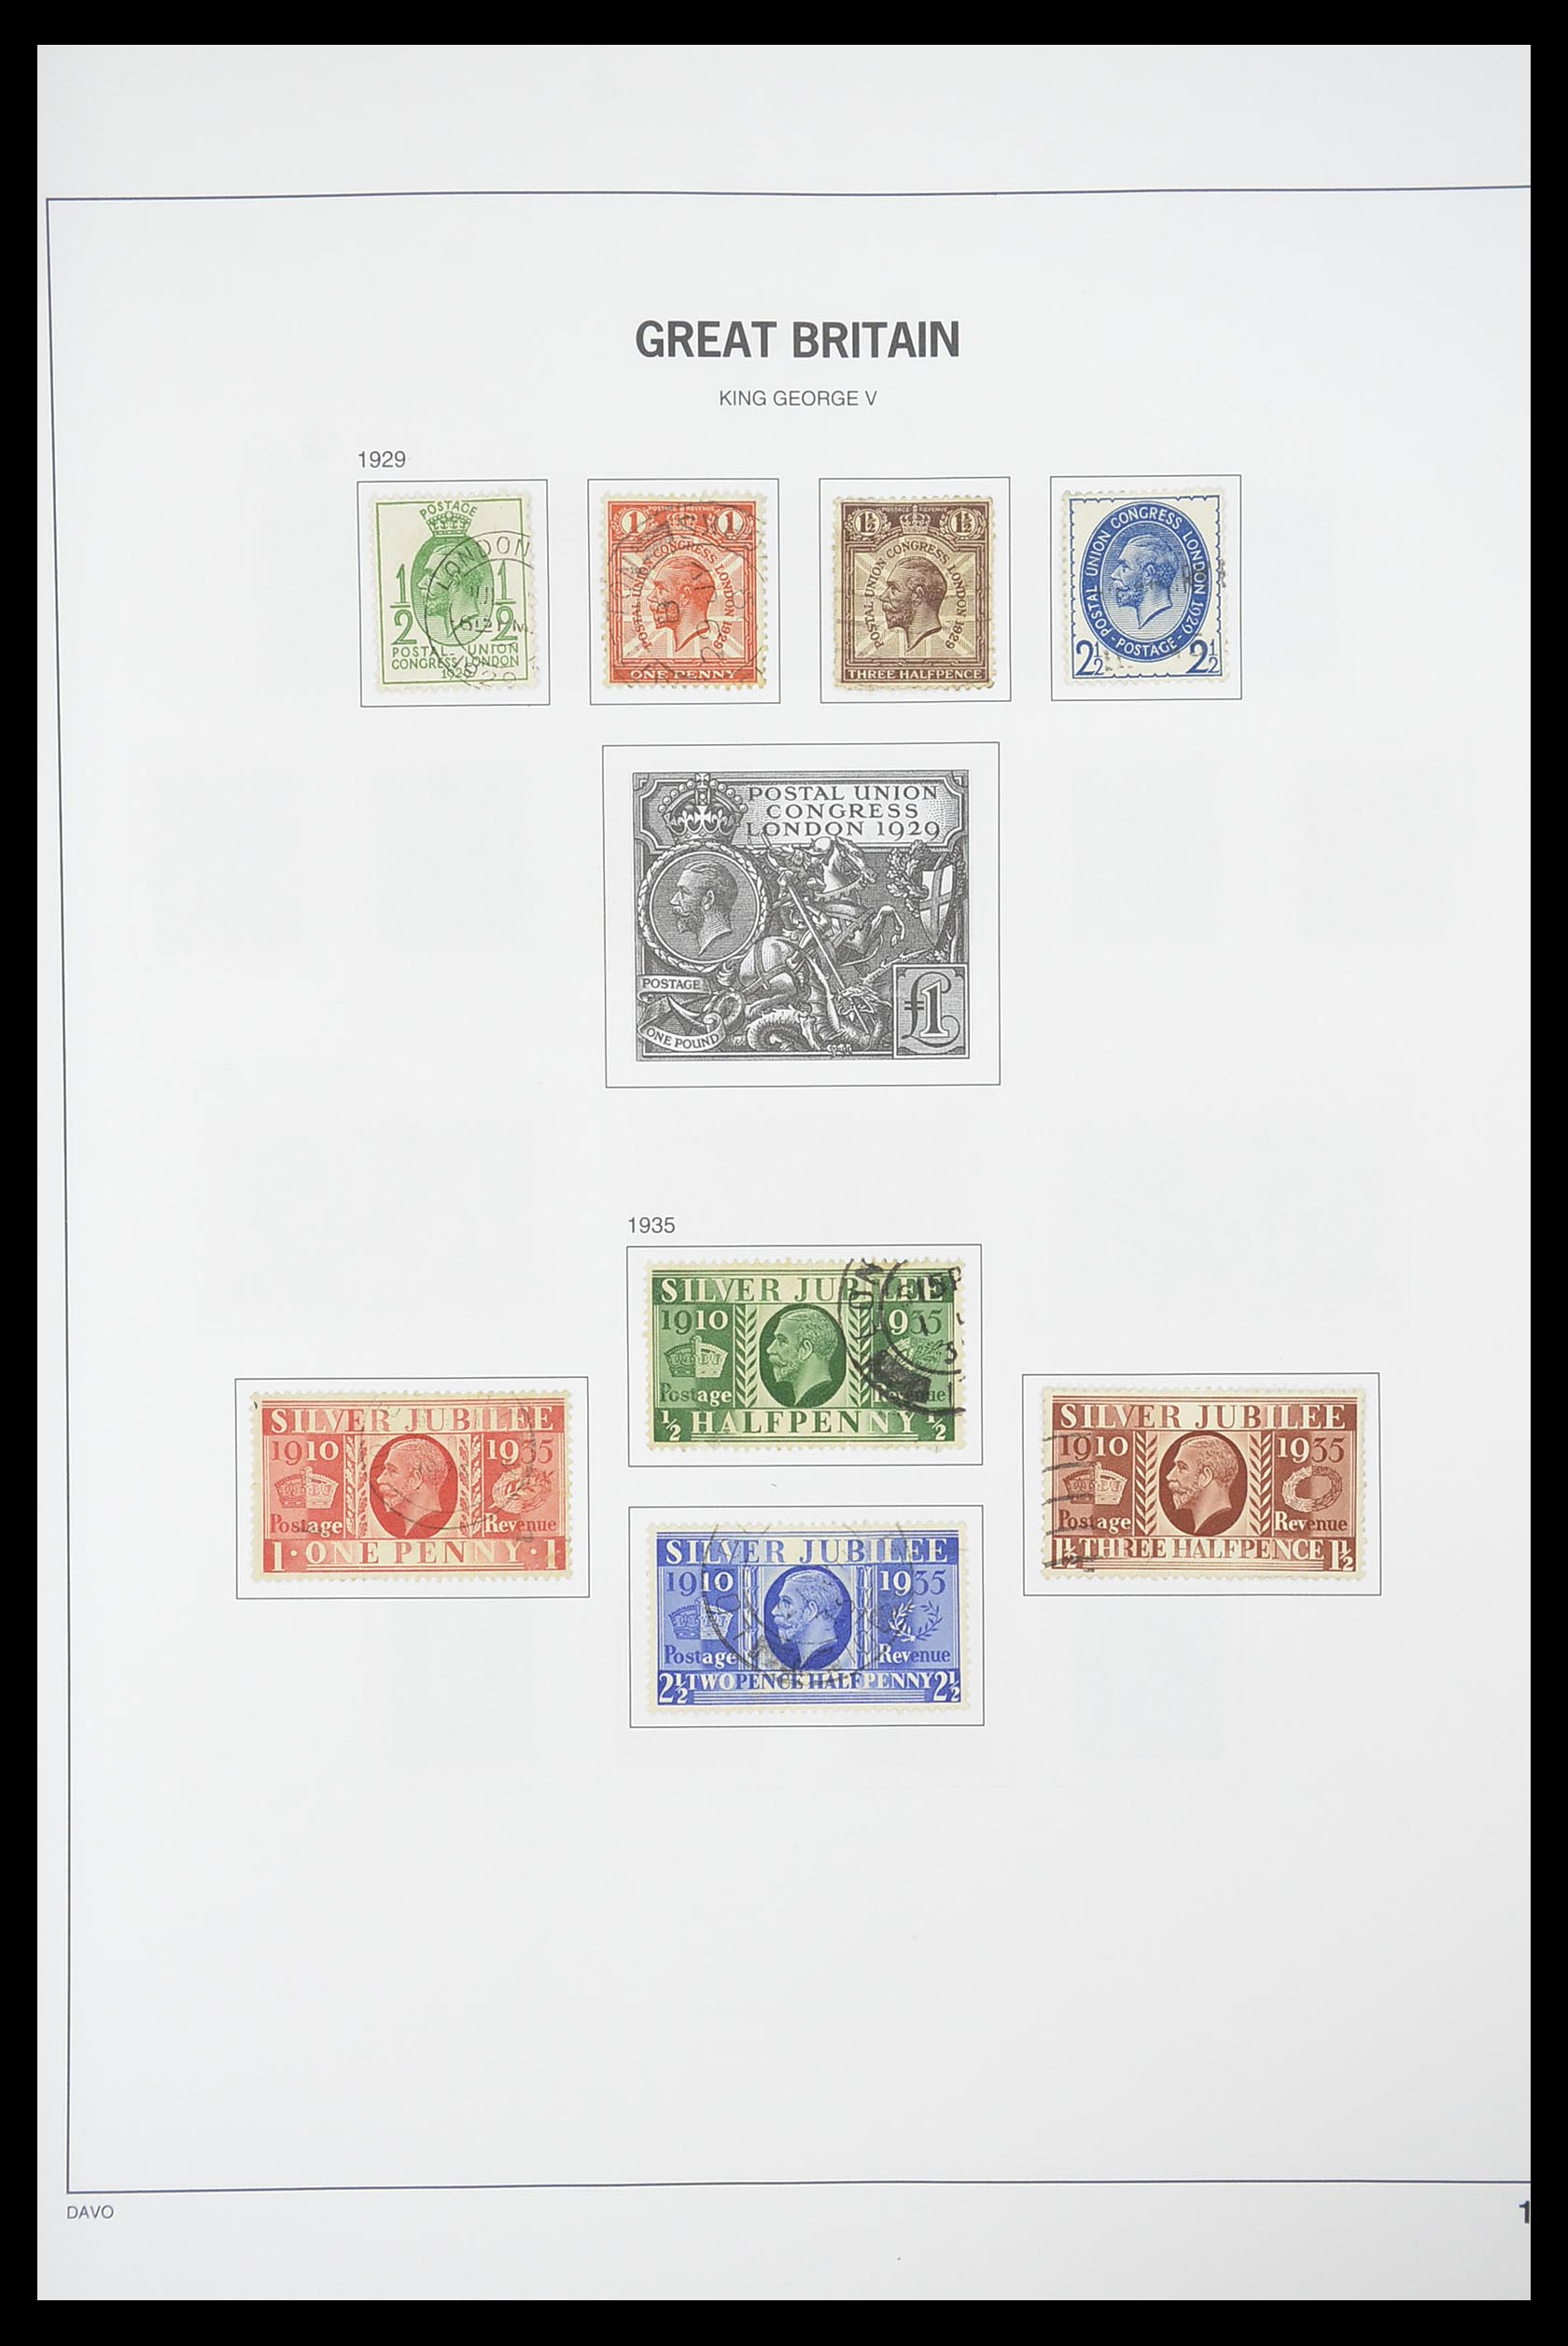 33898 011 - Stamp collection 33898 Great Britain 1840-2006.